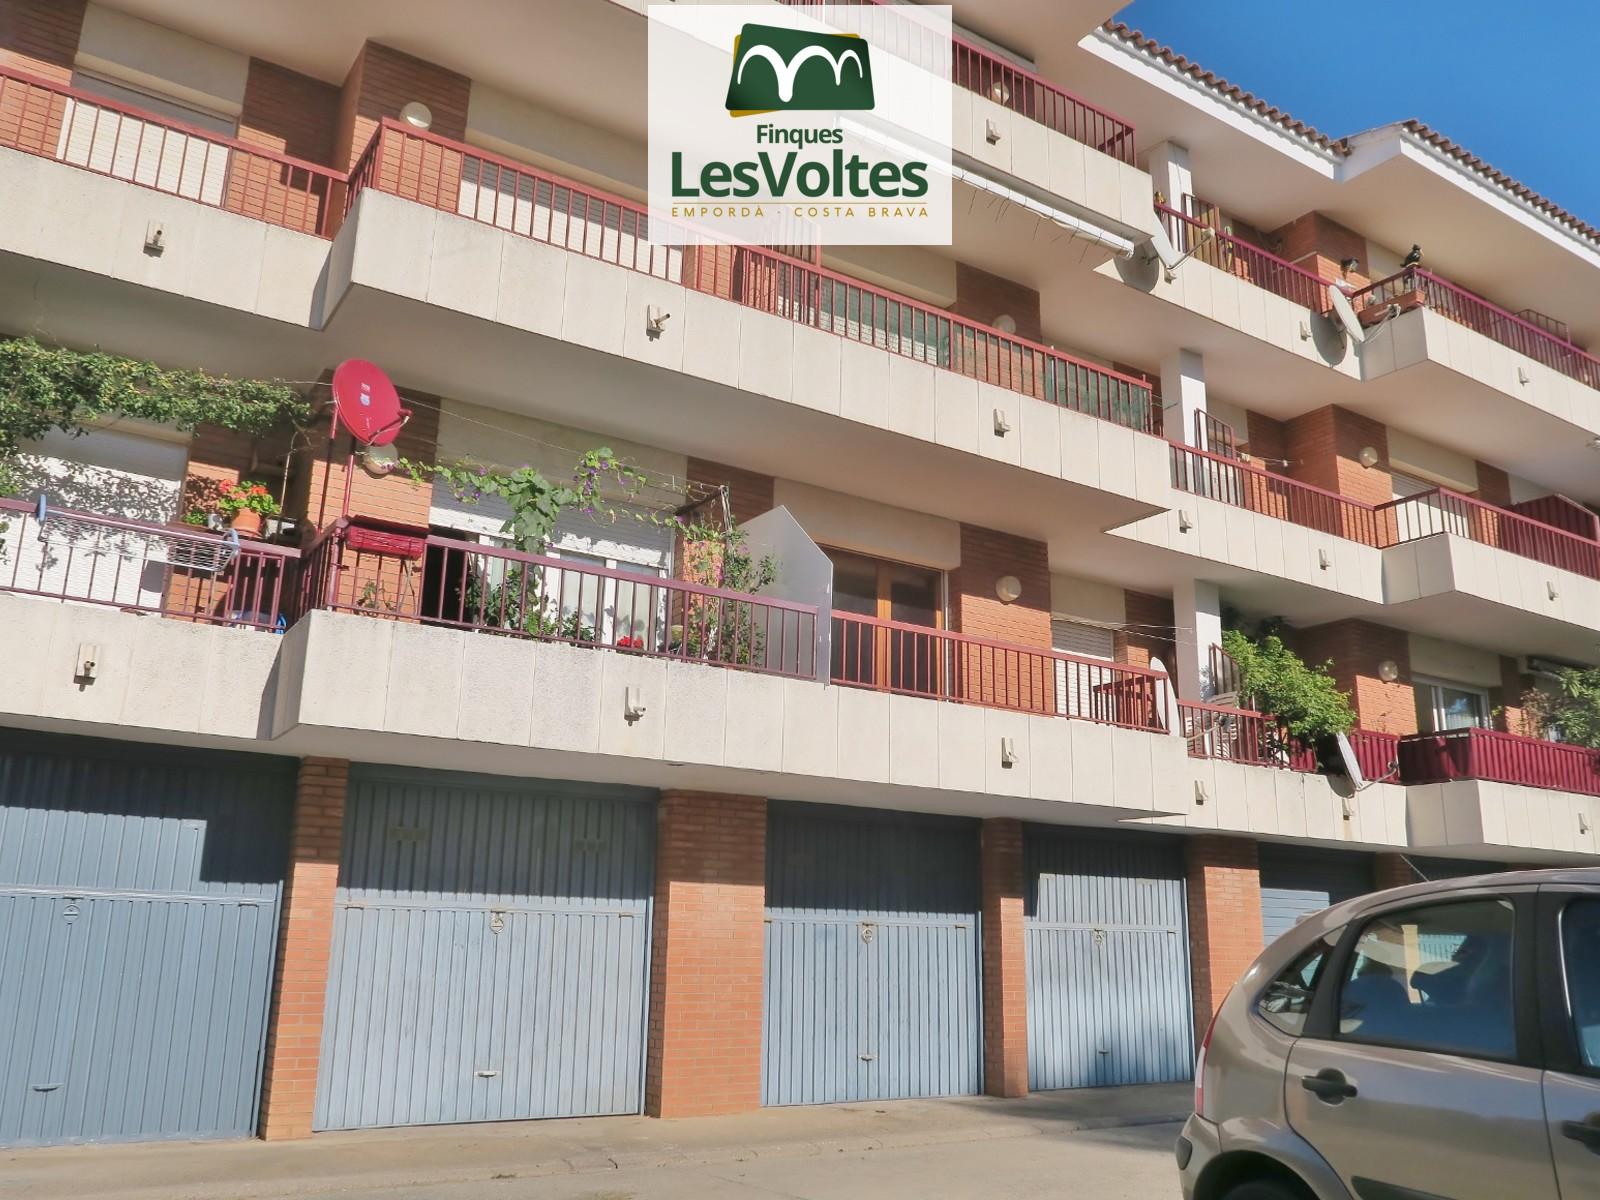 64 M2 APARTMENT TO RESTORE, ON THE FIRST FLOOR WITHOUT ELEVATOR, GARAGE AND ACCESS TO COMMUNITY POOL FOR SALE IN ESTARTIT.